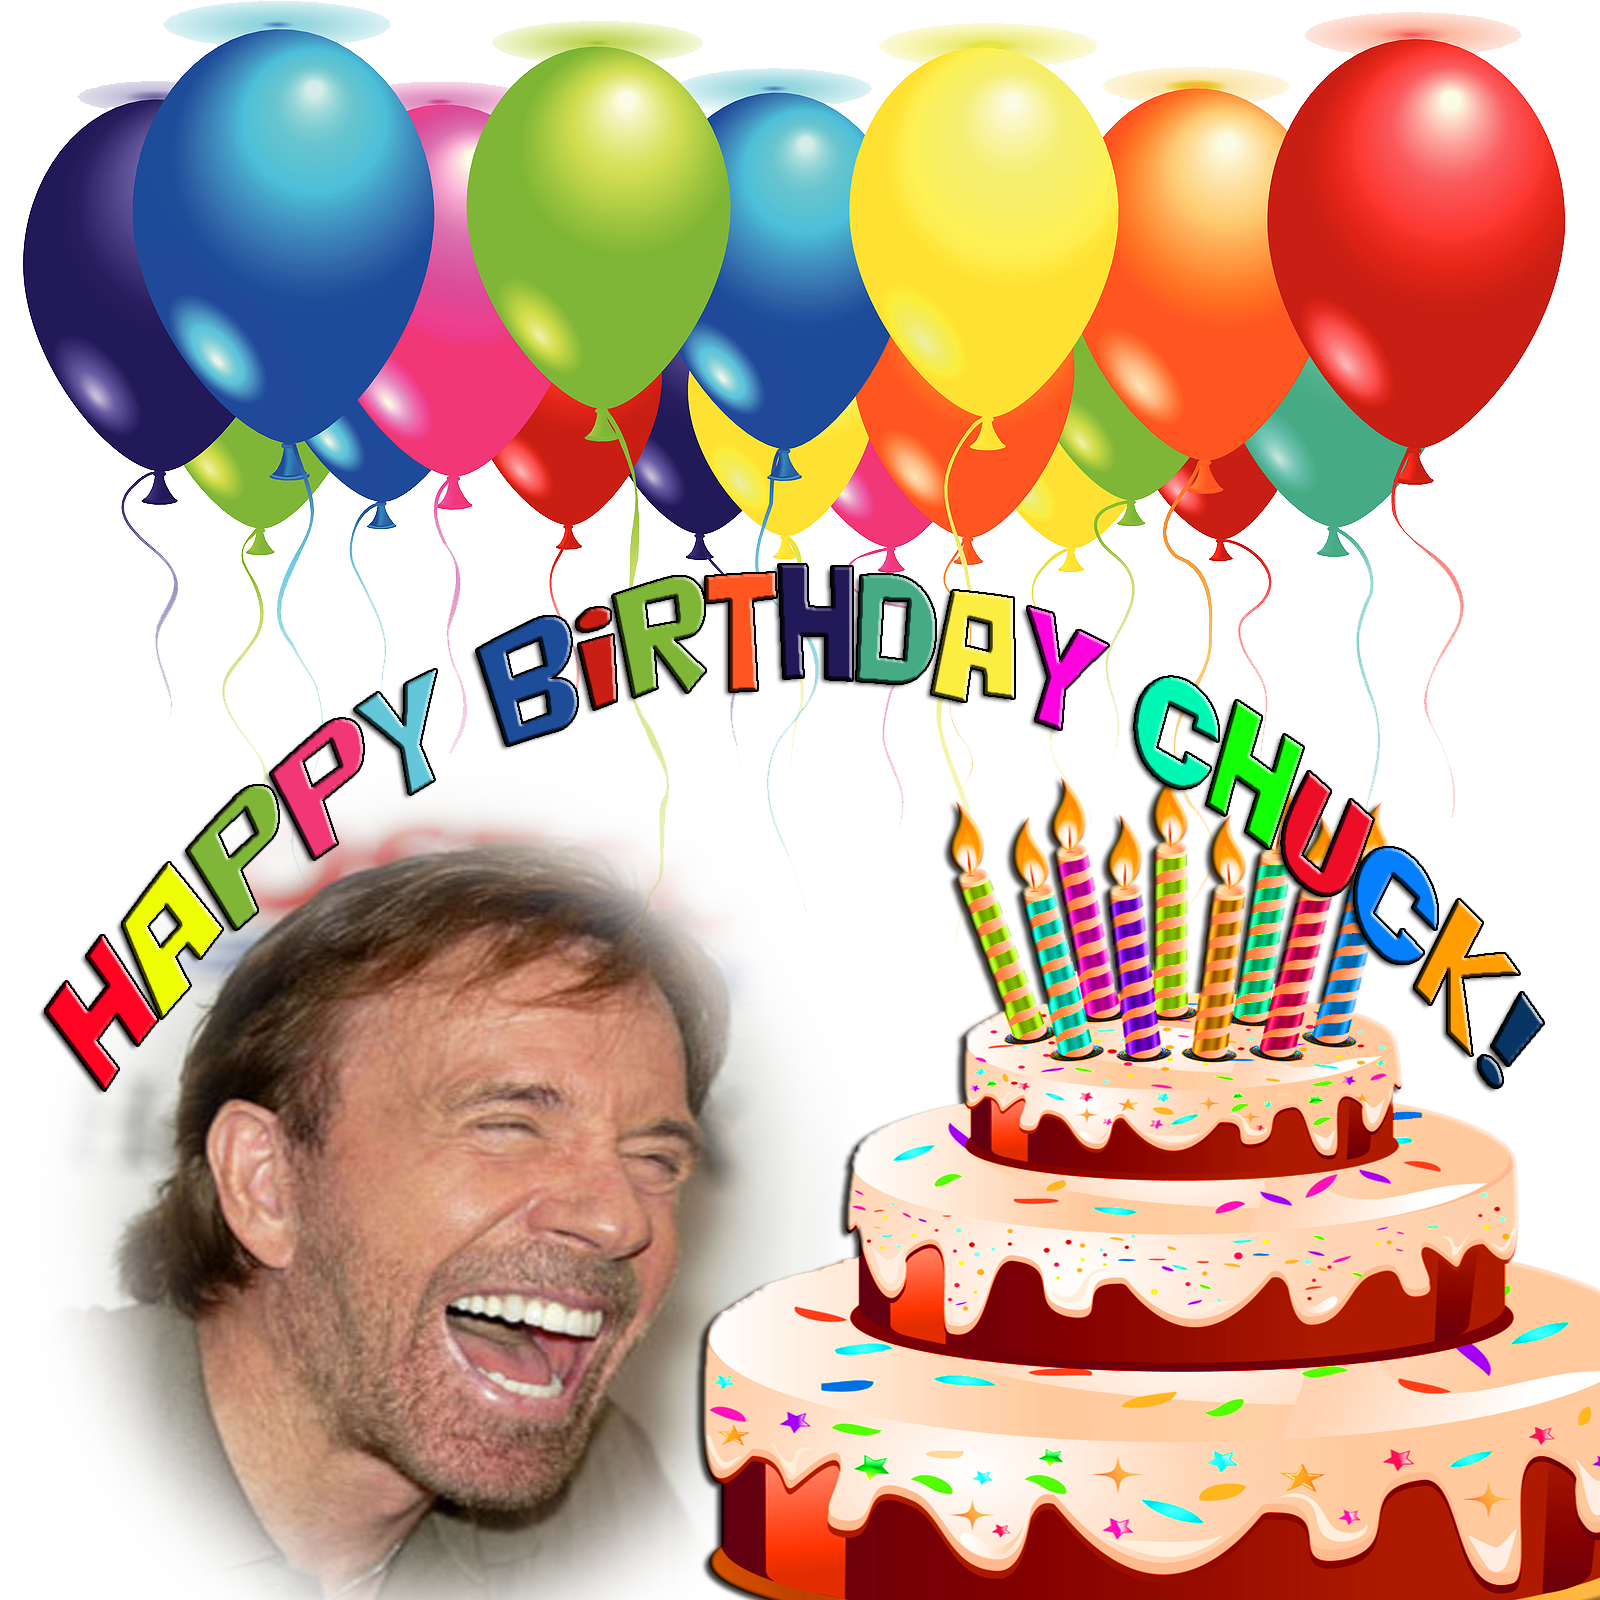 chuck norris birthday quotes. quotesgram, Birthday card